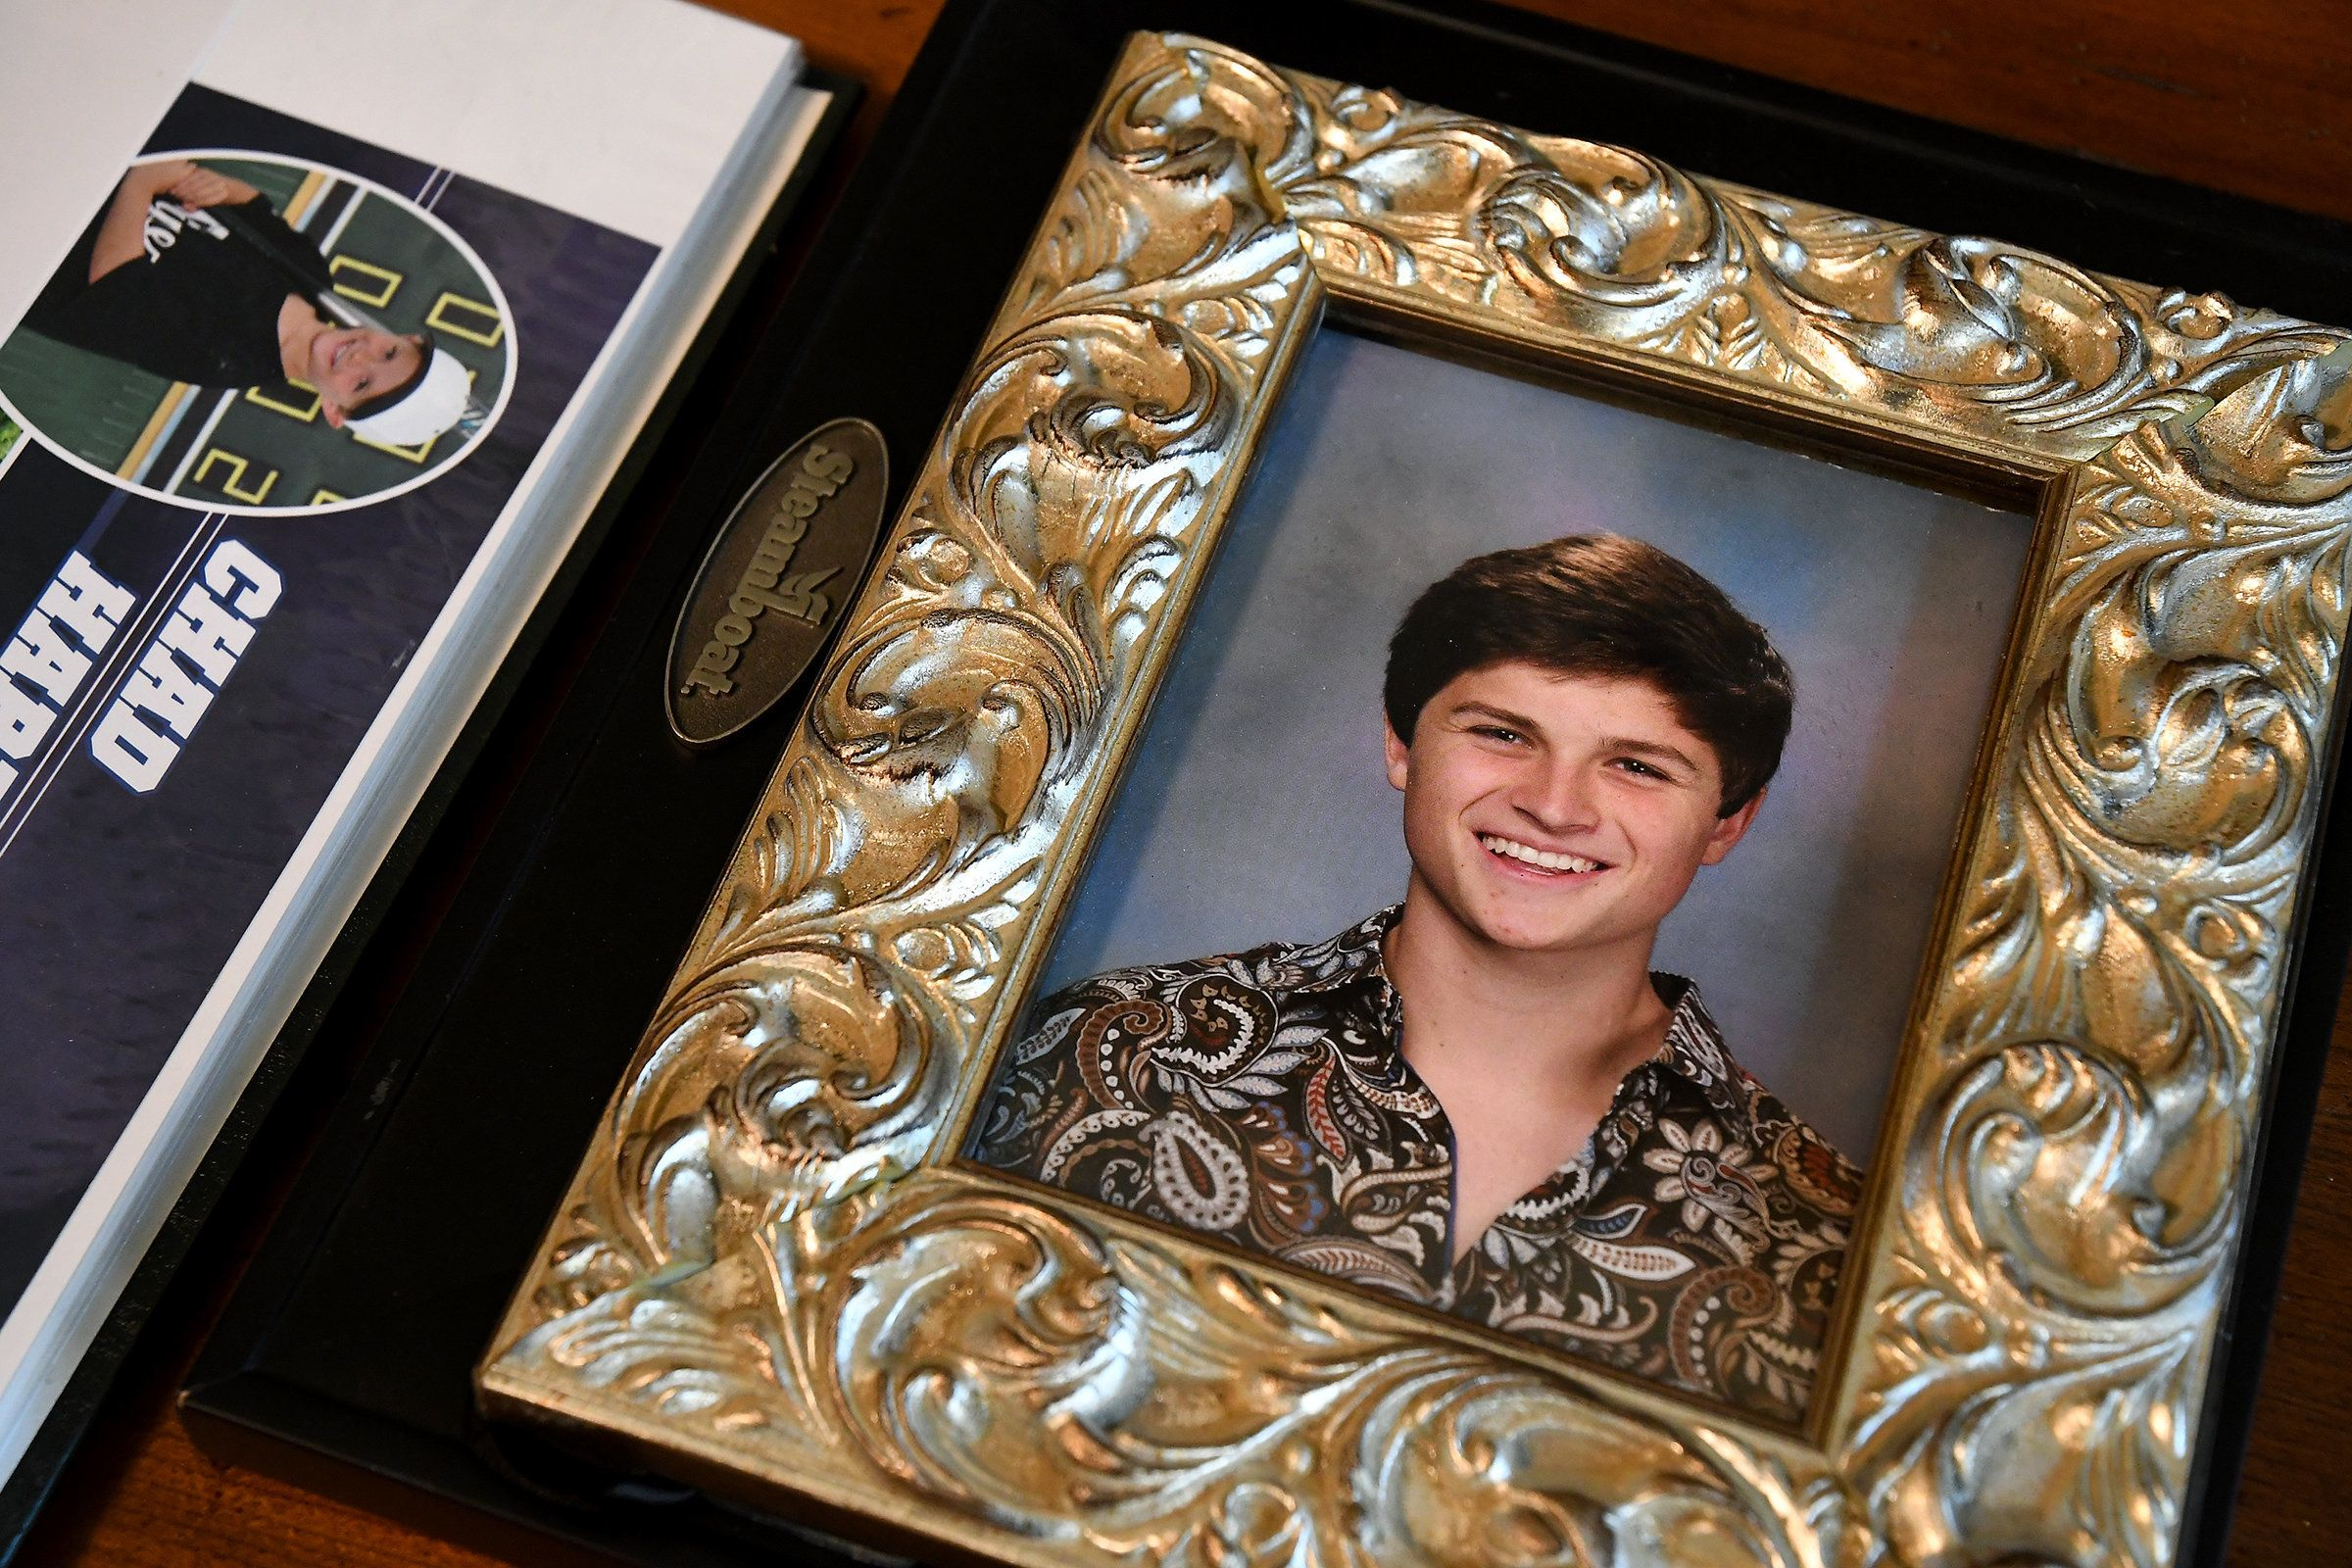 The Harrells created a foundation called Keep the Spark Alive after losing their 17-year-old son, Chad (pictured), to suicide